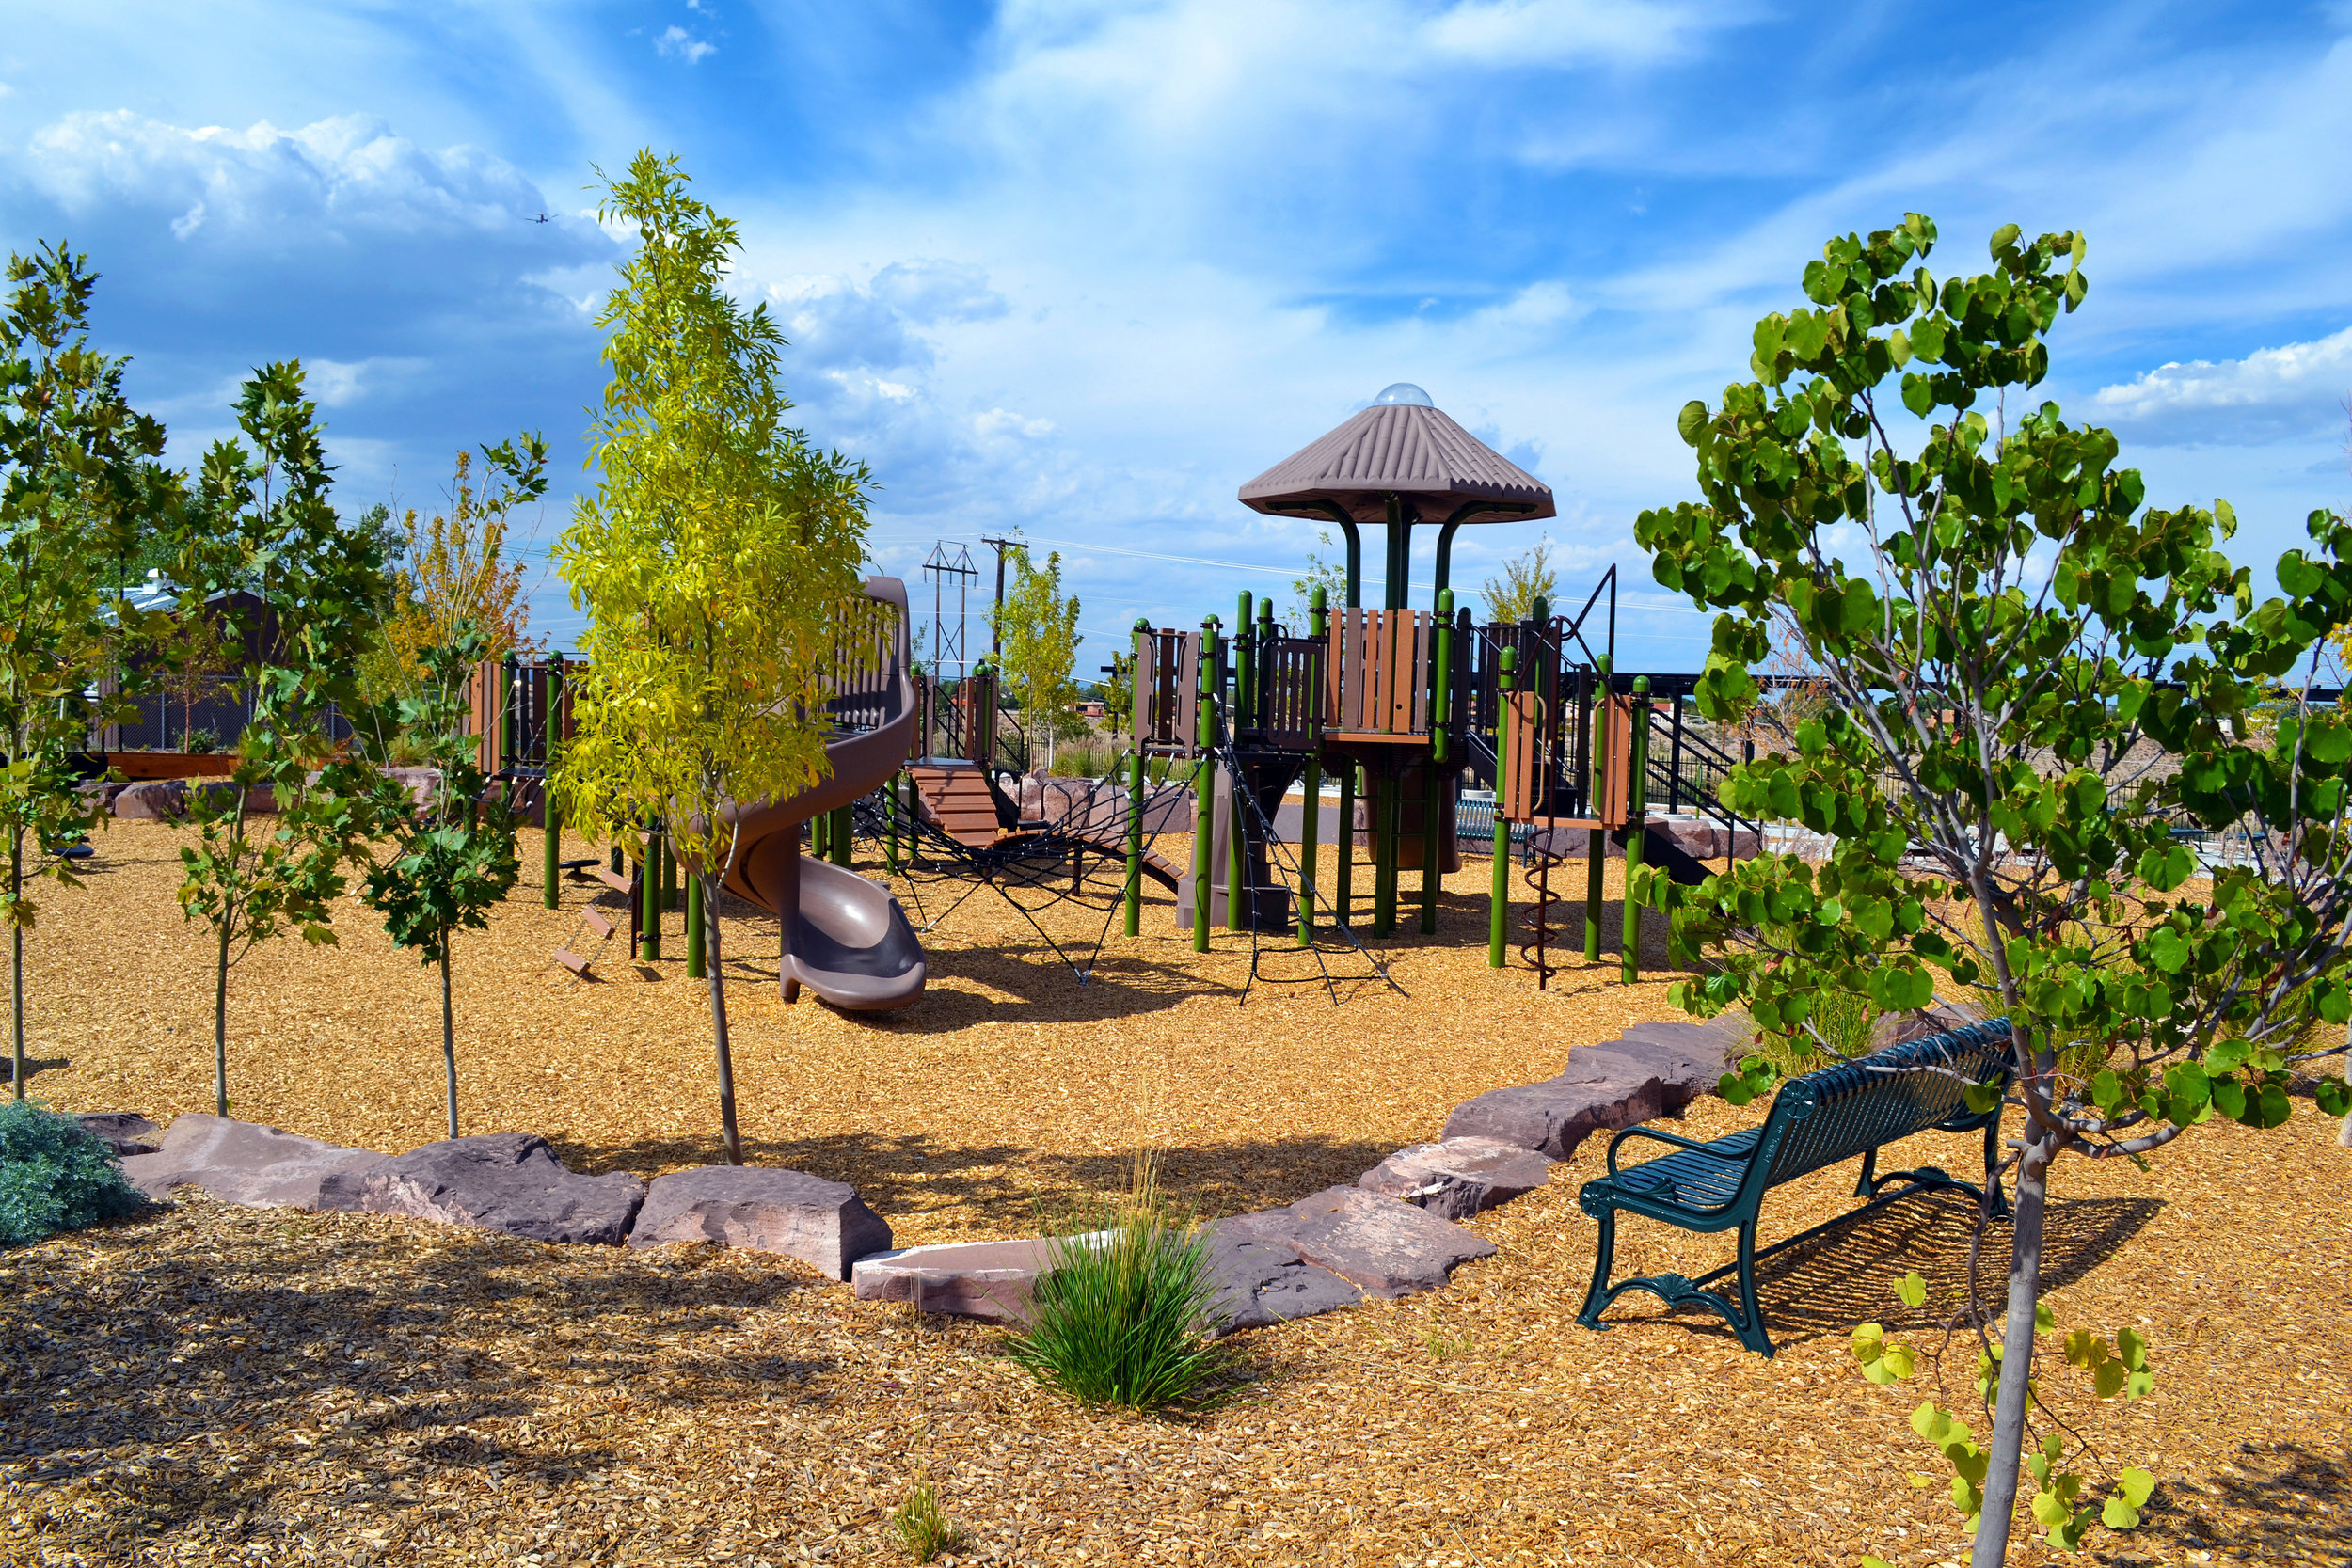 4 Four Hills Village Park, Albuquerque NM -  elevated play structure